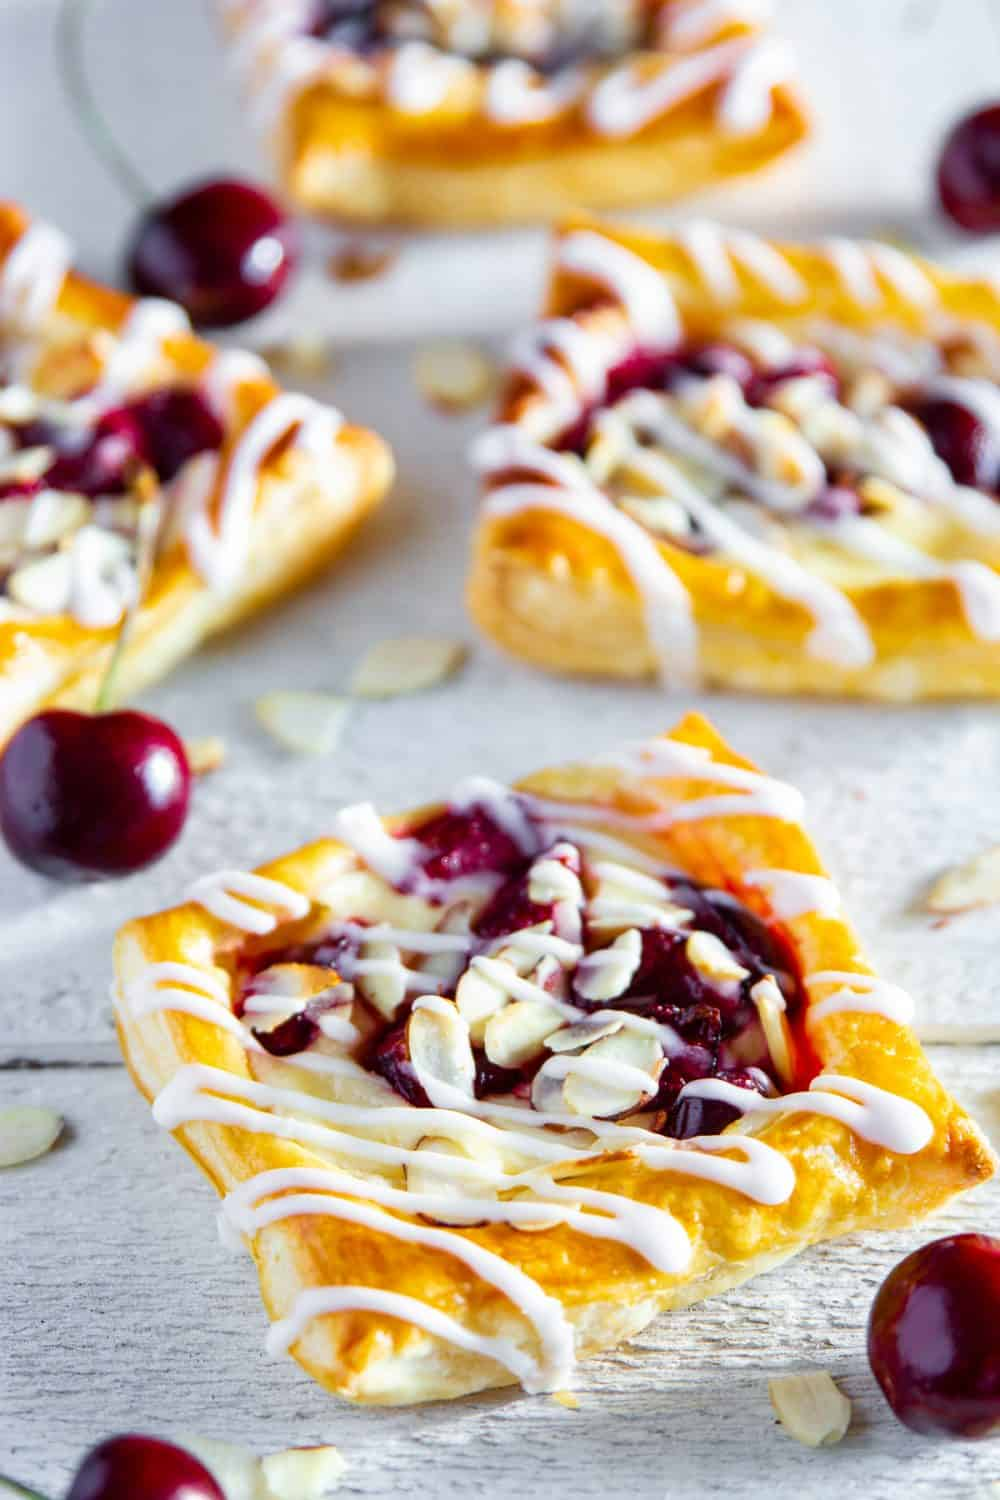 Fresh cherries alongside this puff pastry create a Cherry Danish with tons of flavor